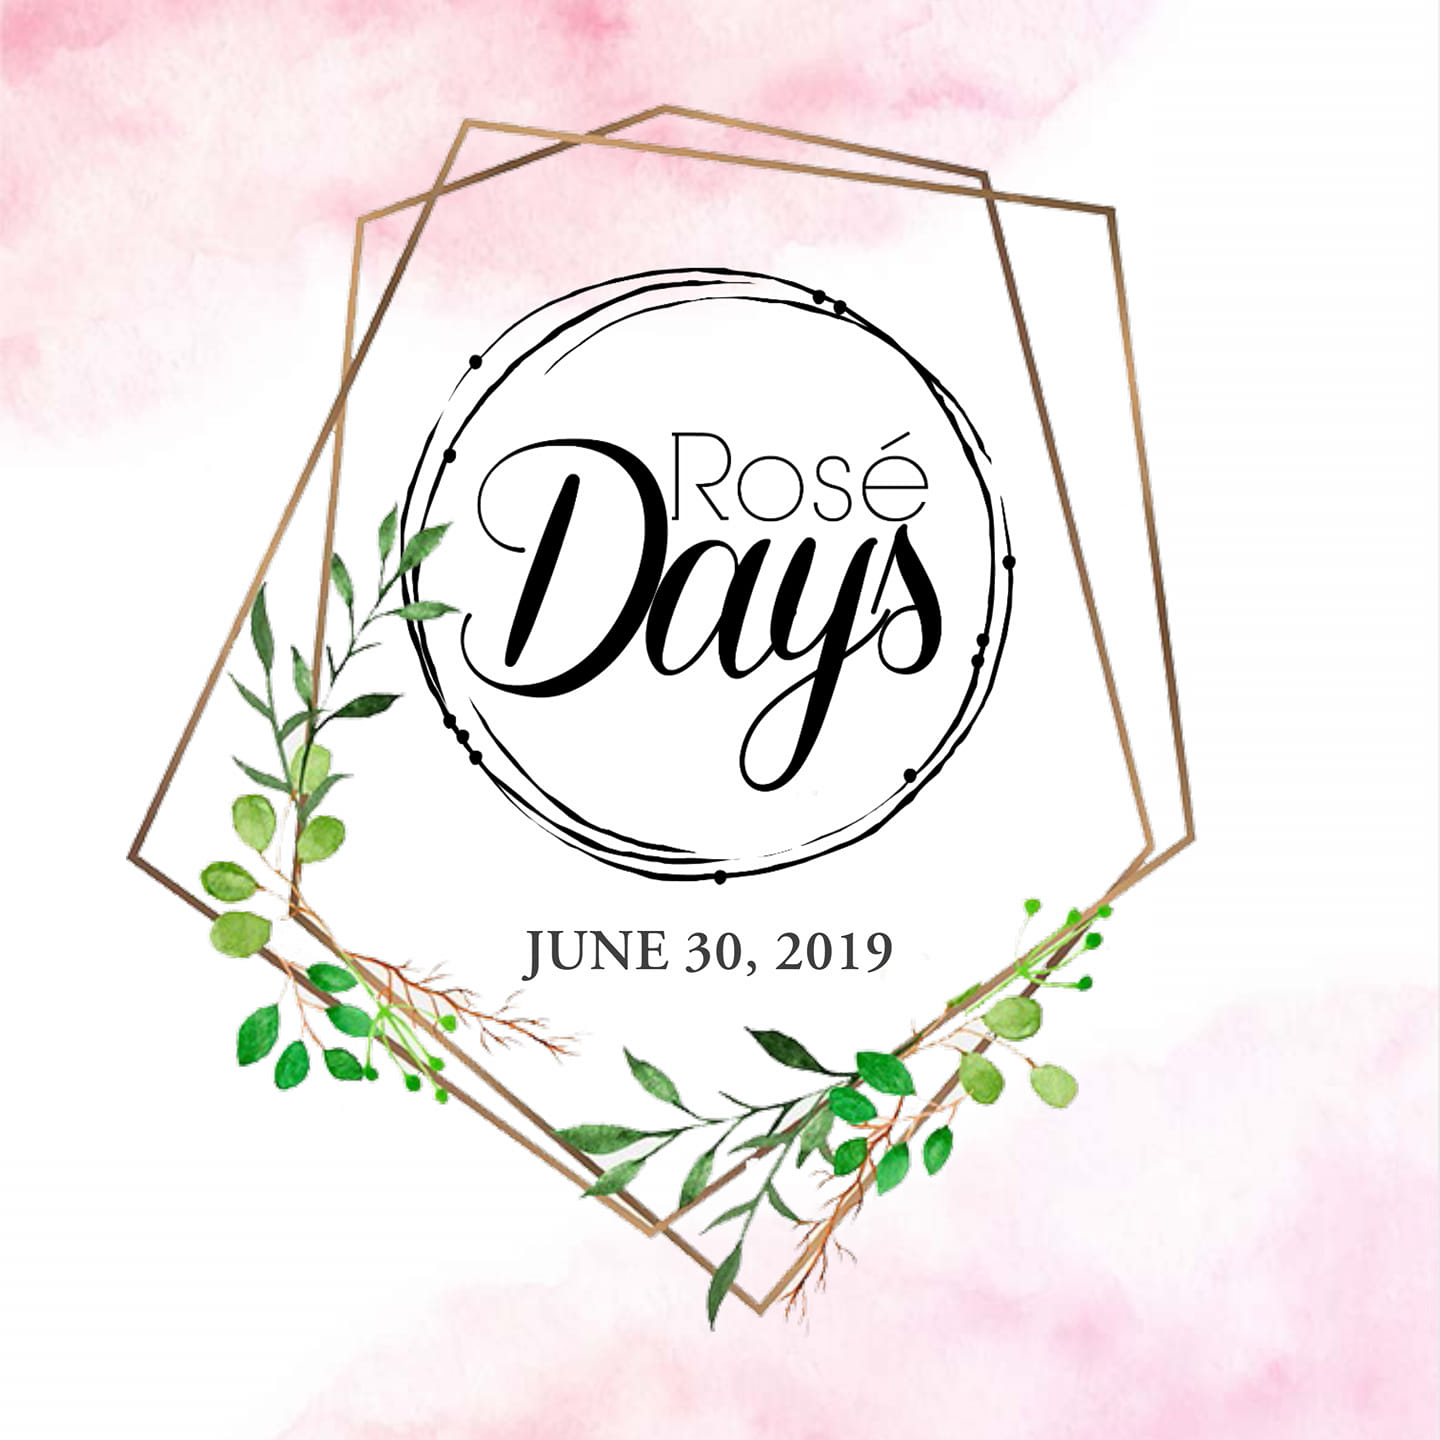 Rose Days at Iris Vineyards Sunday, June 30th     12-5pm